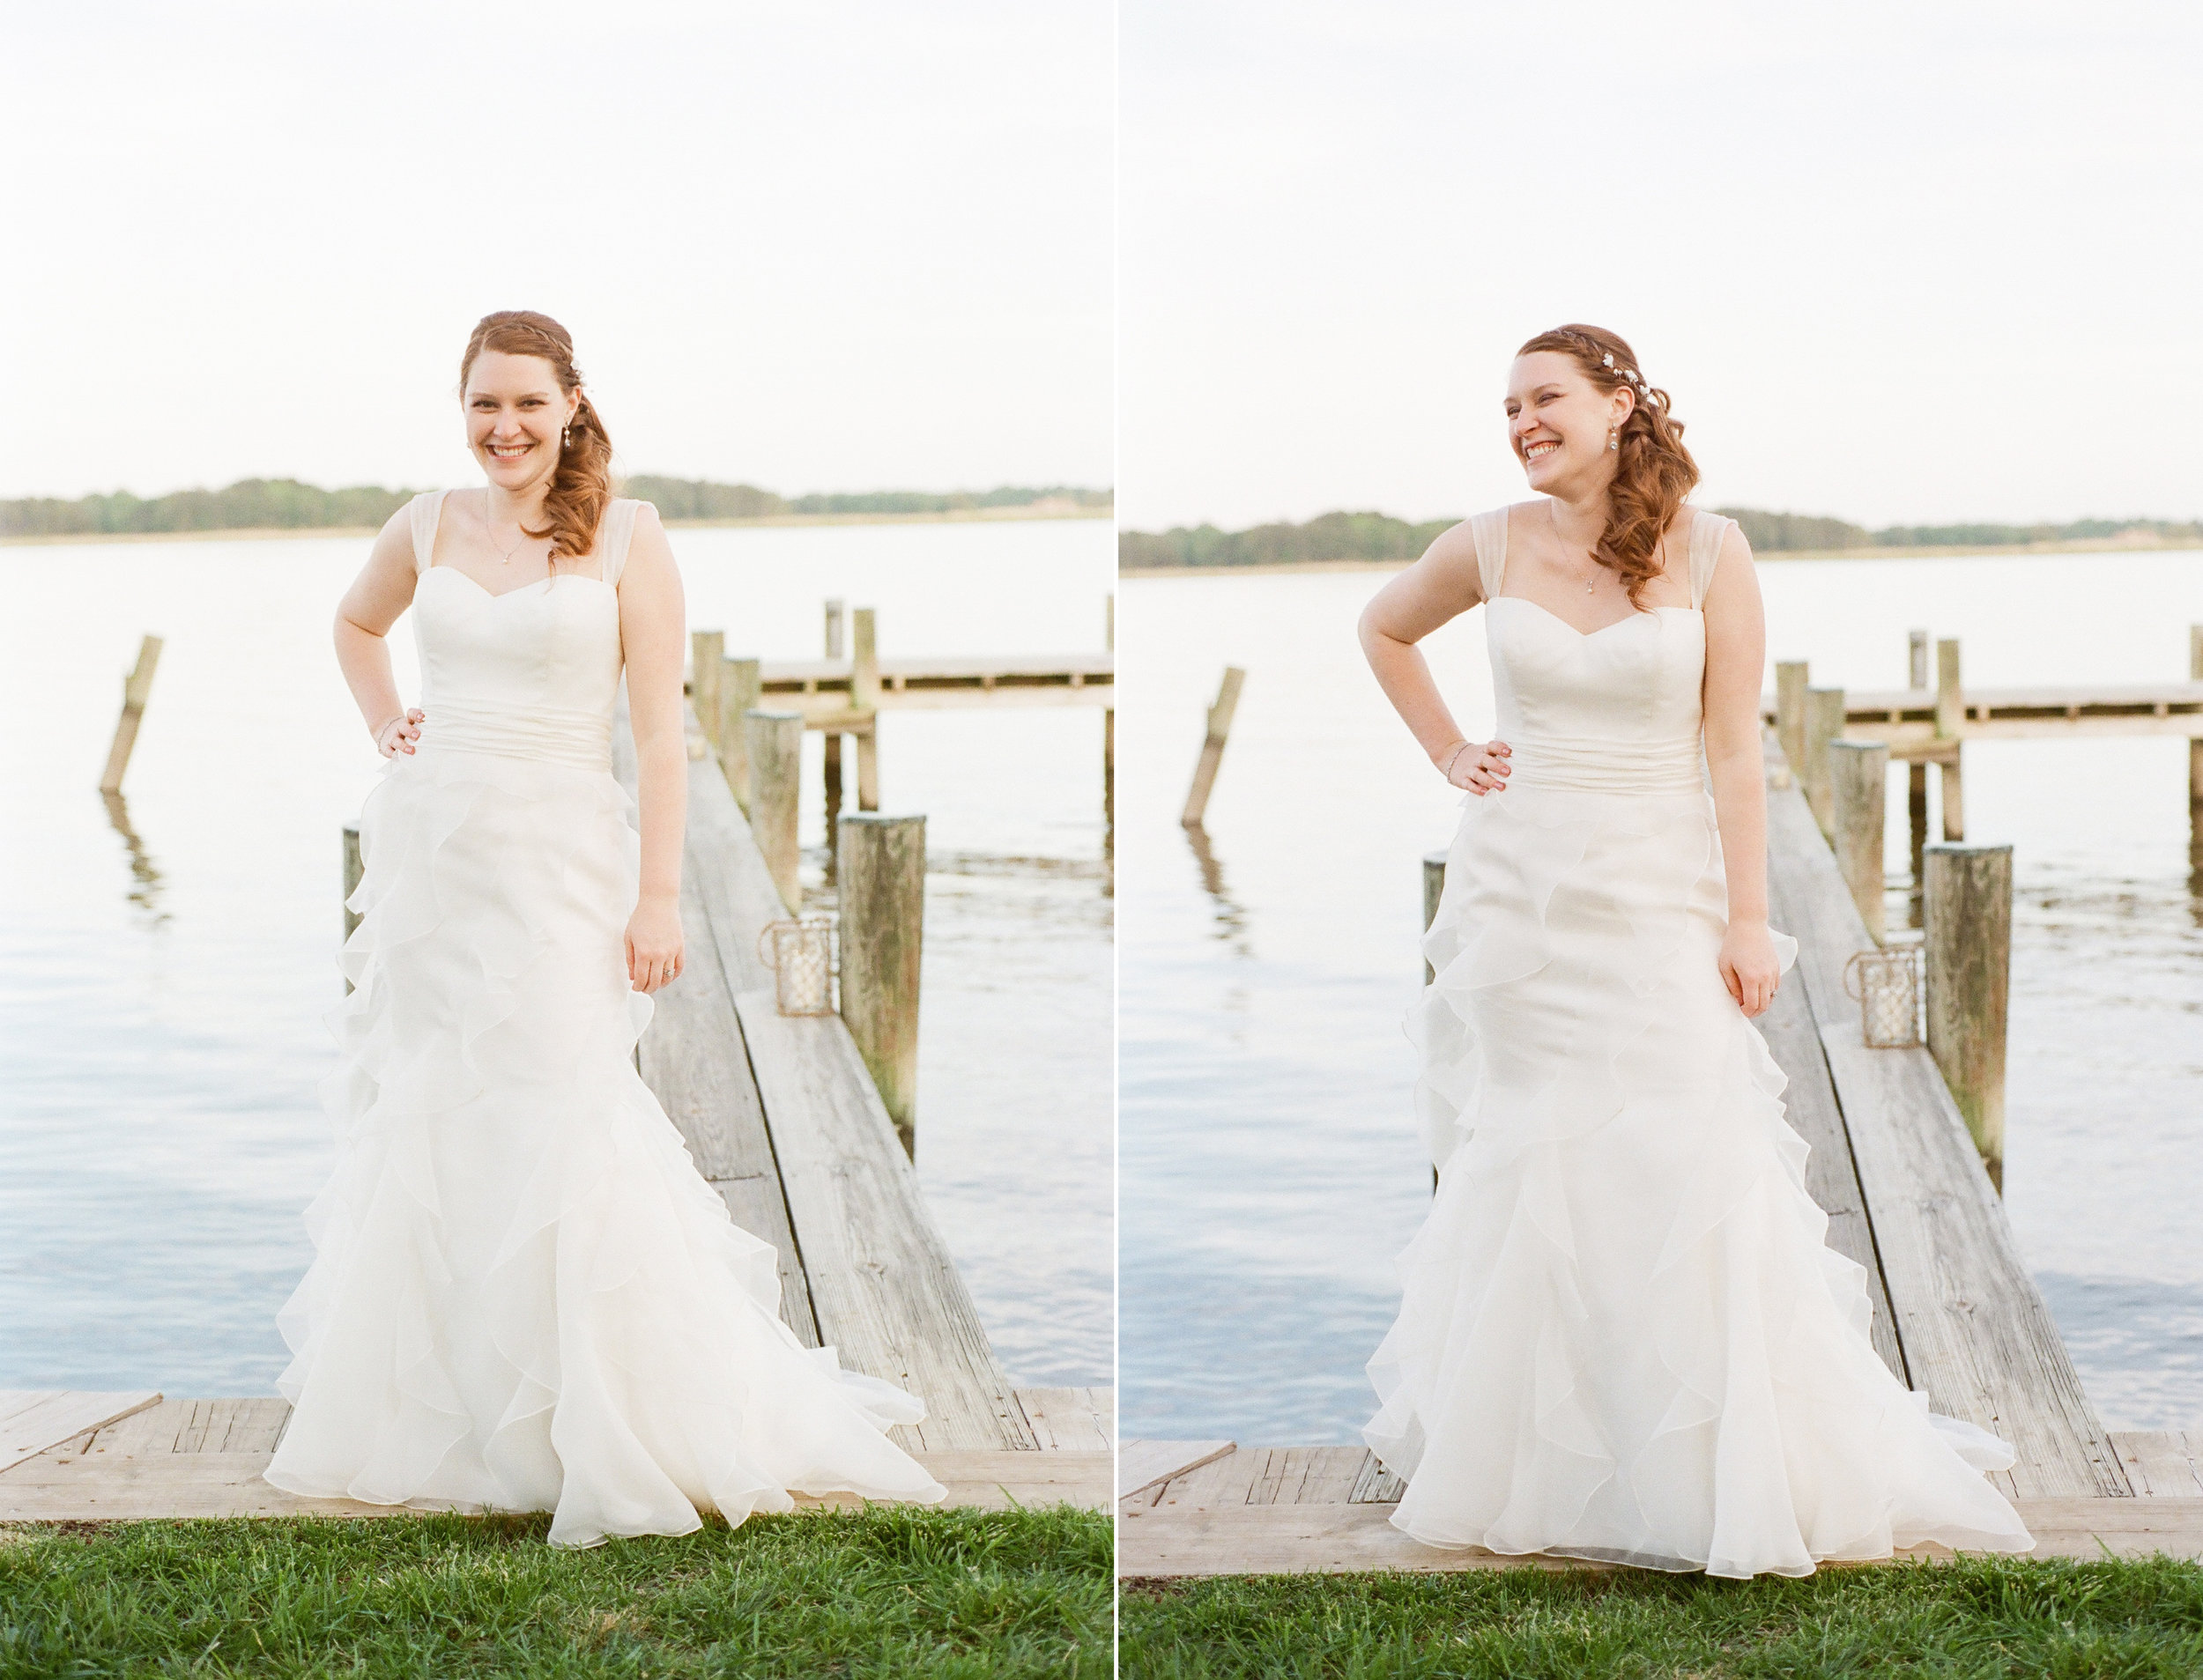 St-Michaels-Chesapeake-Bay-Maryland-Fine-Art-Wedding-Photographer-15.jpg